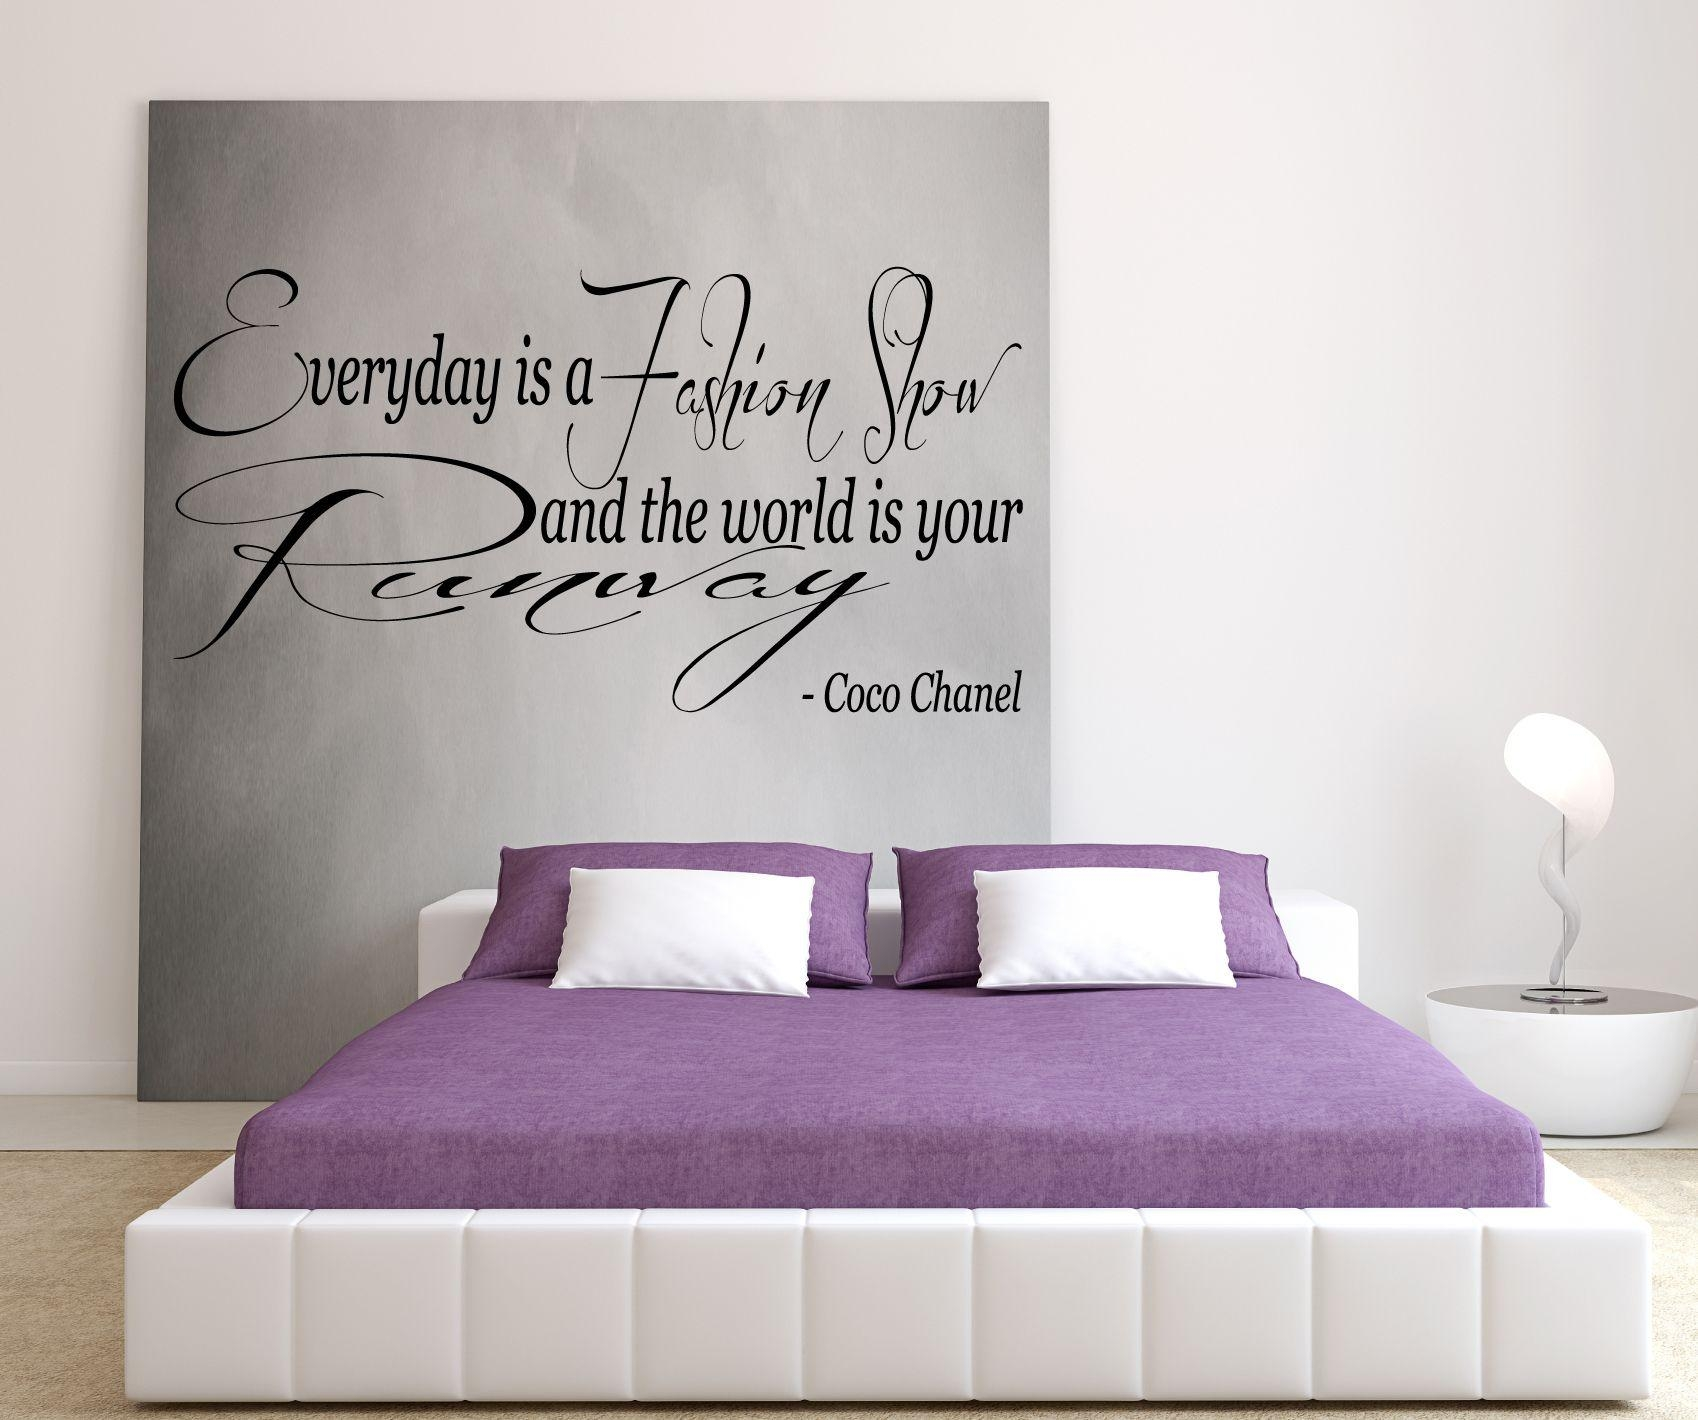 Coco Chanel – Everyday Is A Fashion Show And The World Is Your Pertaining To Coco Chanel Wall Stickers (Image 7 of 20)